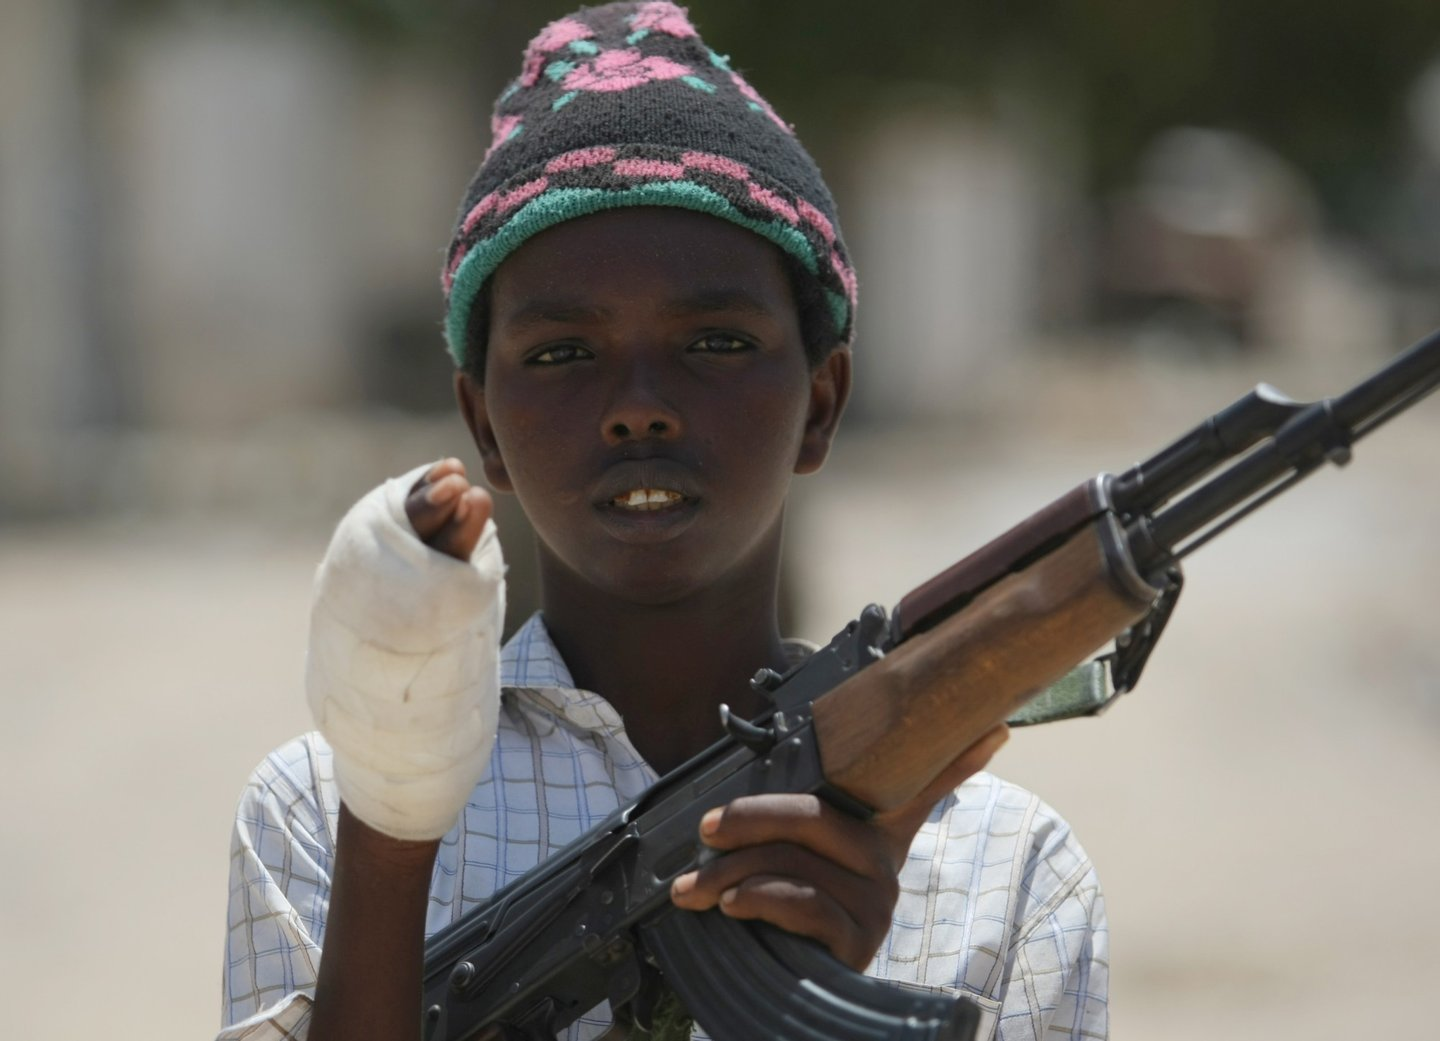 """A young fighter from the Al-Shabab militia shows the wound in his hand which he suffered while battling Somali government forces in a frontline section in Sinaya Neighborhood in Mogadishu, on July 13, 2009. According to the Islamist militants, Al-Shabab fighters and Hizbul Islam fighters regained some of their position overnight which they had lost to the government soldiers over the weekend. Paramedics, police and government forces said the fighting Sunday spread across several districts of the city and claimed many lives. """"The ambulances collected 75 injured civilians and 14 dead bodies of civilians,"""" Ali Muse, the head of the city's ambulance service, told AFP. """"Some of them were killed by mortar and artillery shells and others by crossfire."""" AFP PHOTO/Mohamed DAHIR (Photo credit should read MOHAMED DAHIR/AFP/GettyImages)"""